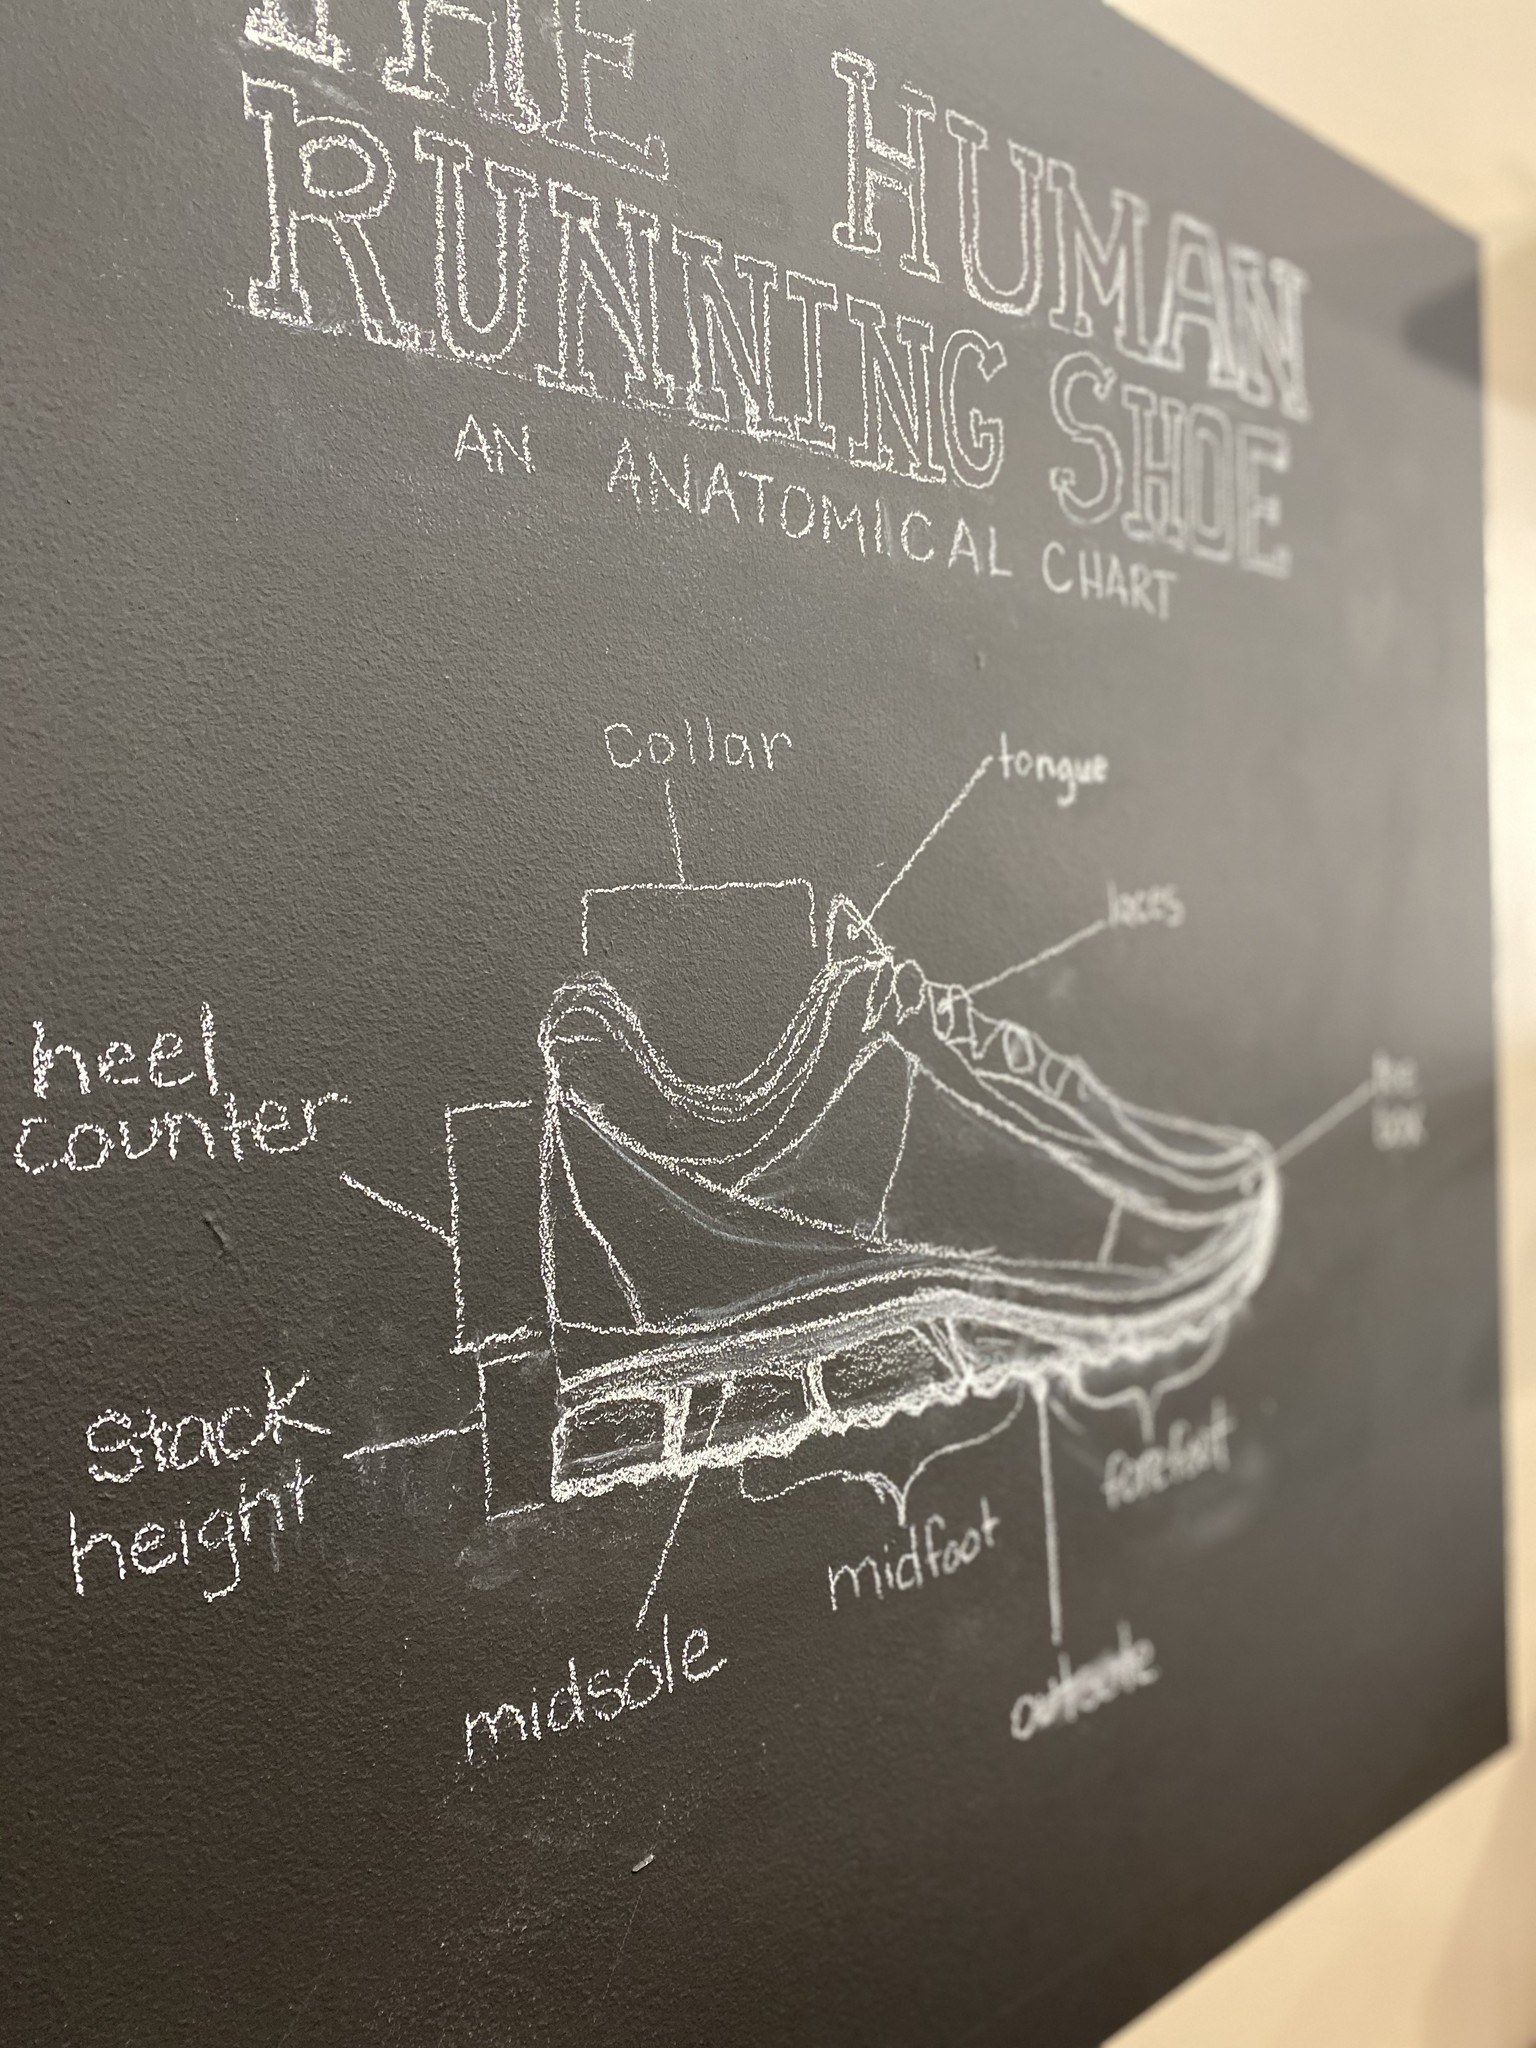 What's In a Running Shoe, Other Than Your Feet?